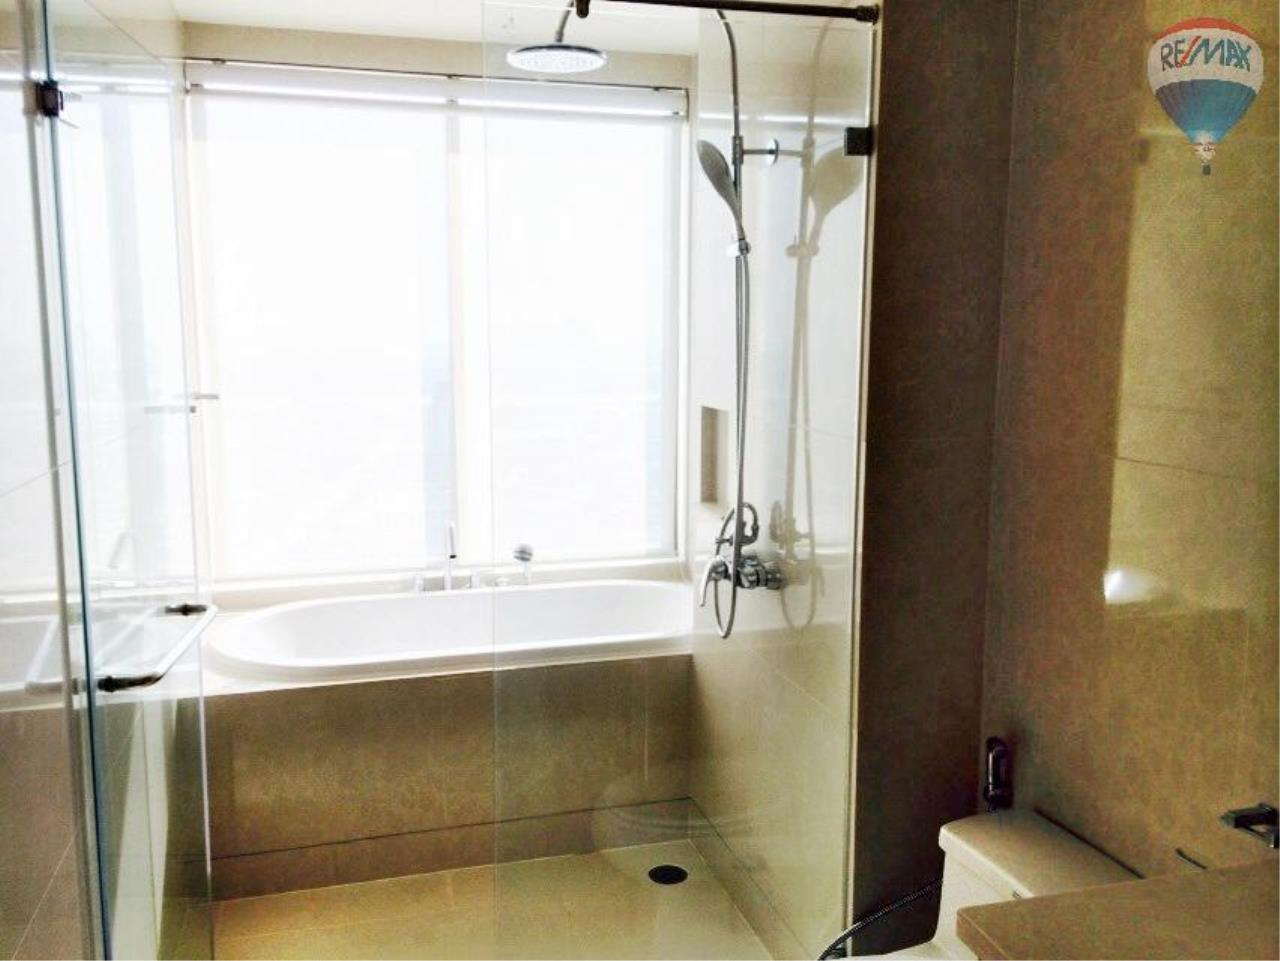 RE/MAX Properties Agency's Condominium for sale 1 bedroom 65 Sq.m. at Emporio Place 12